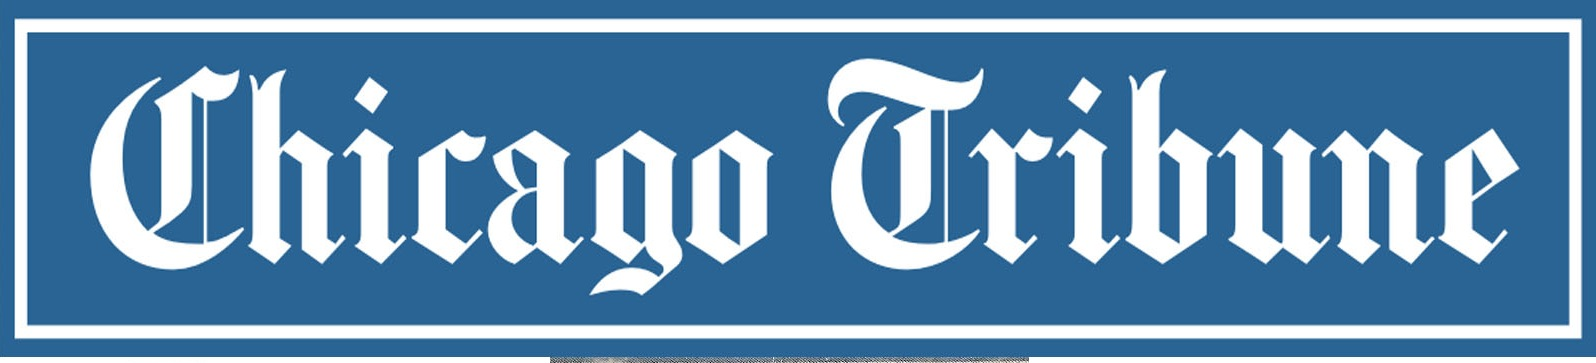 Chicago Tribune The Underground Named The Most Popular